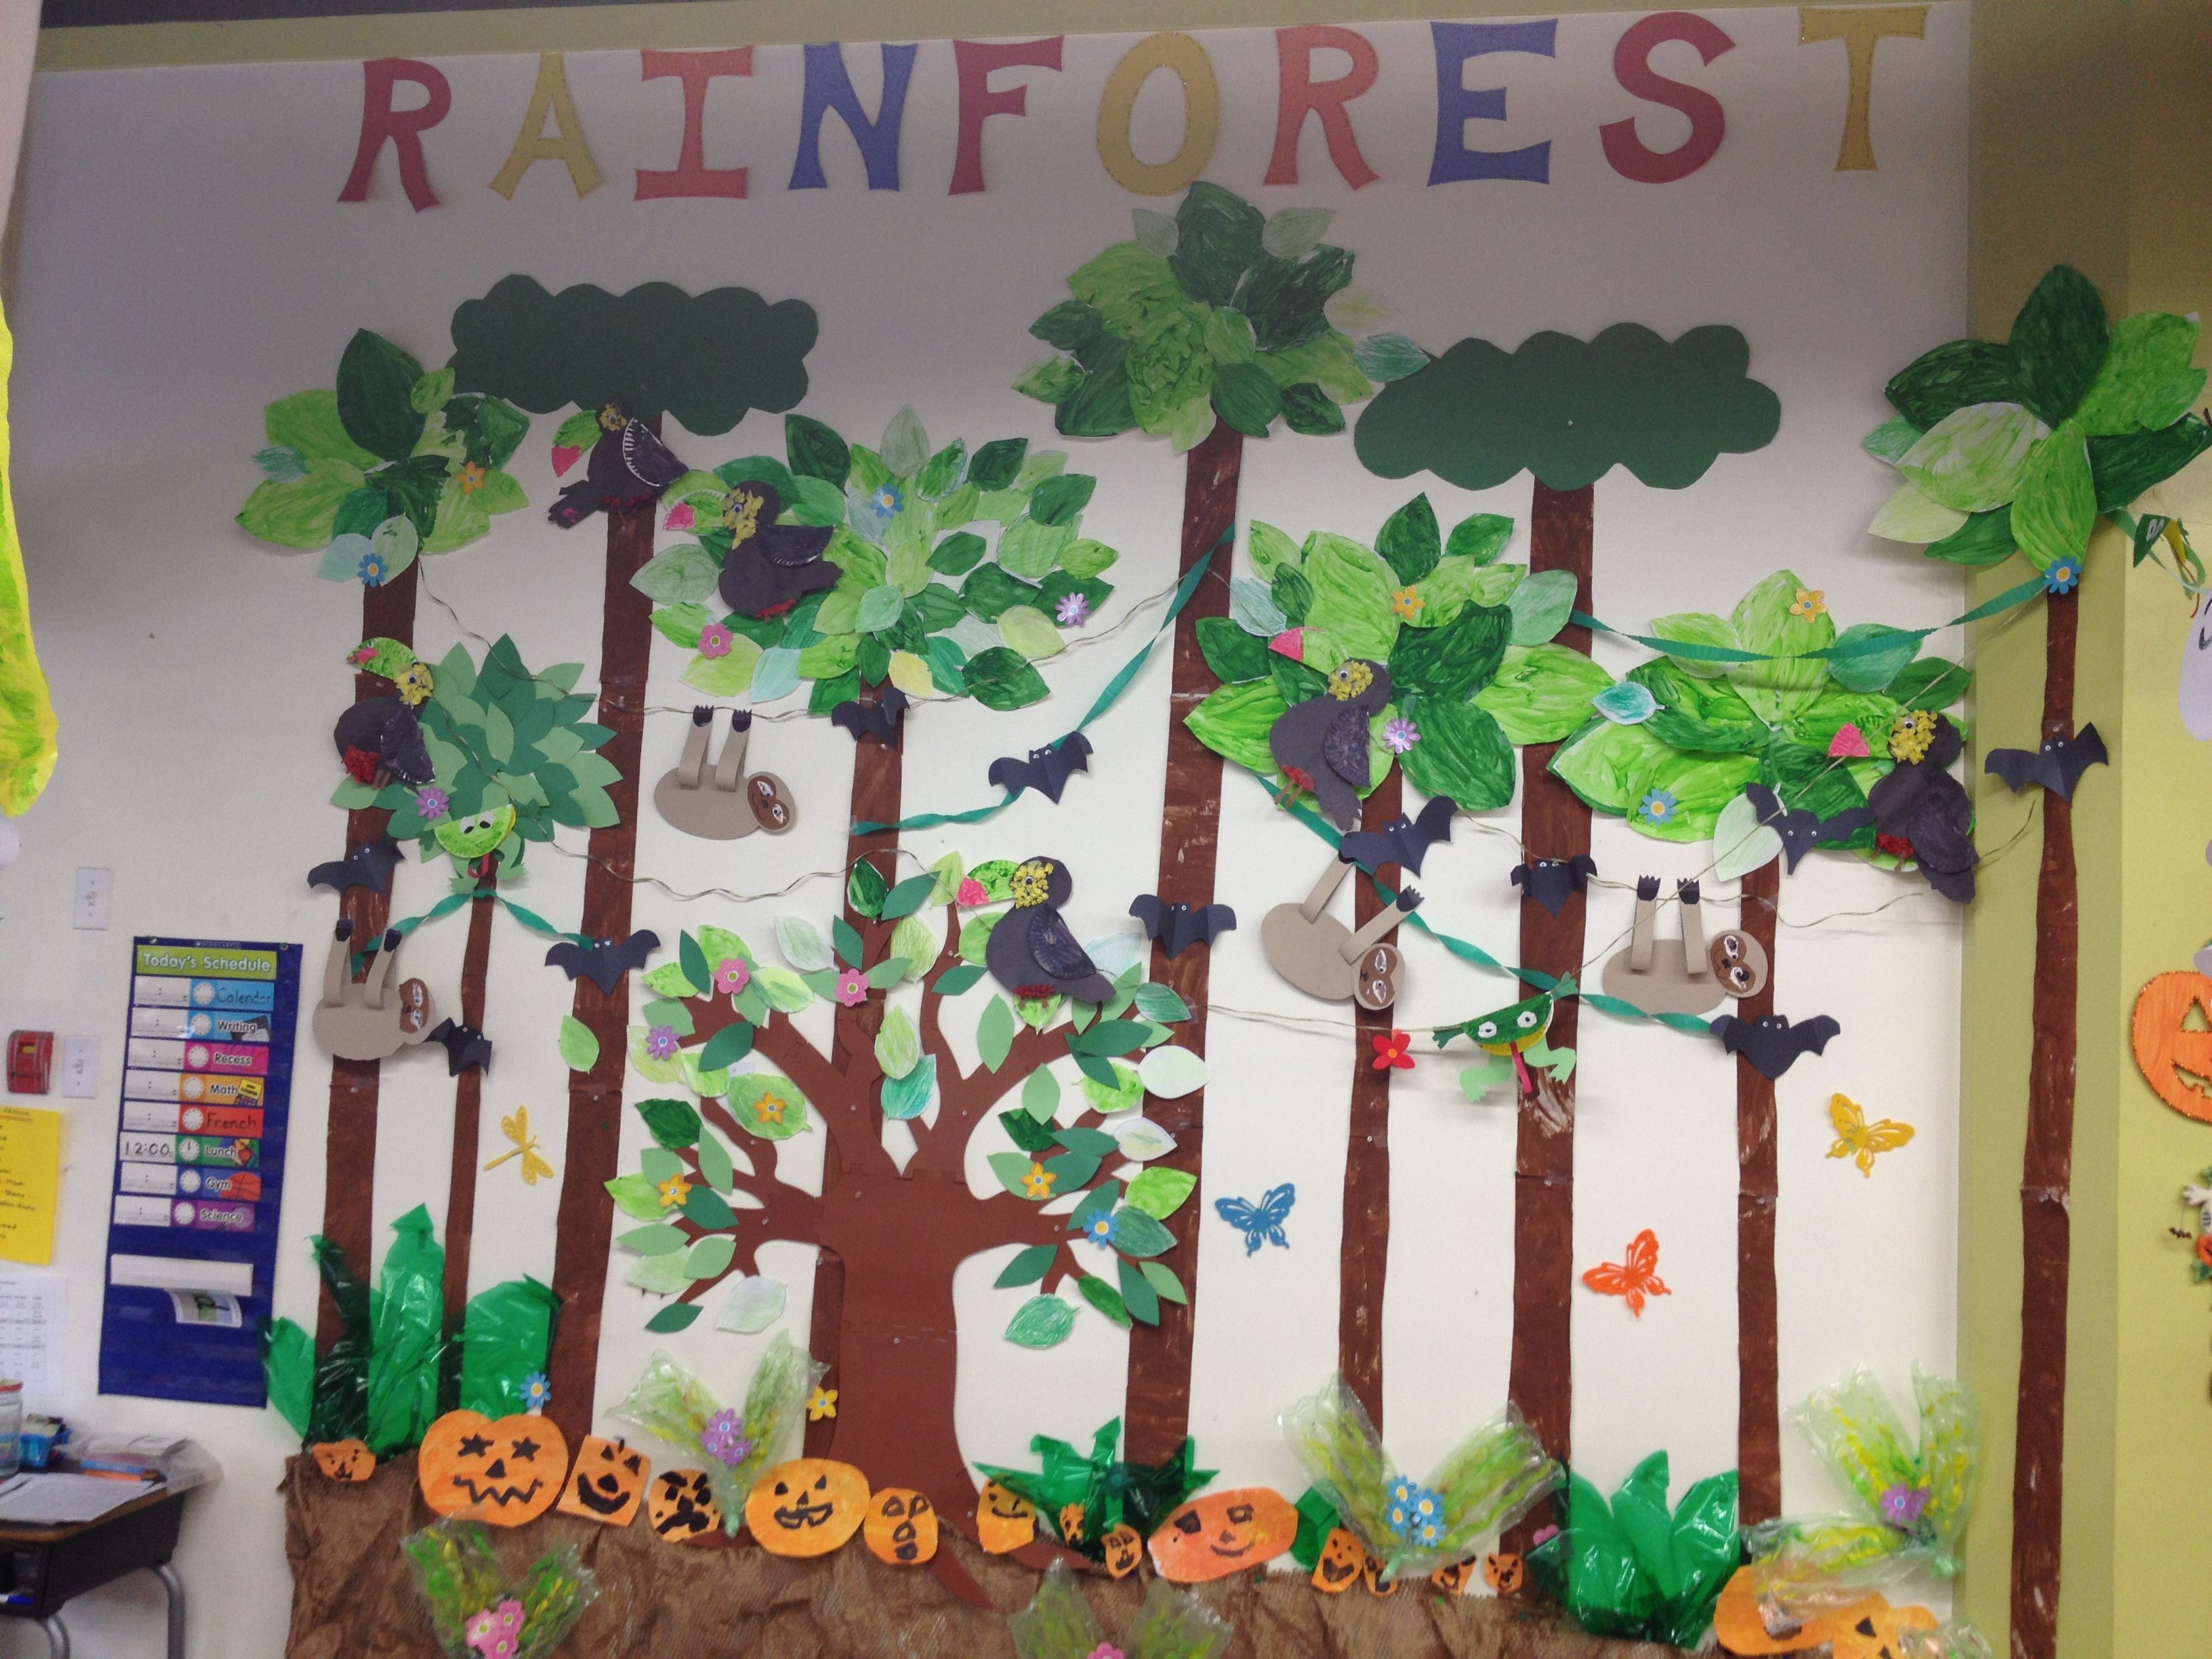 Rainforest classroom mural drama play rainforest for Art and craft for classroom decoration